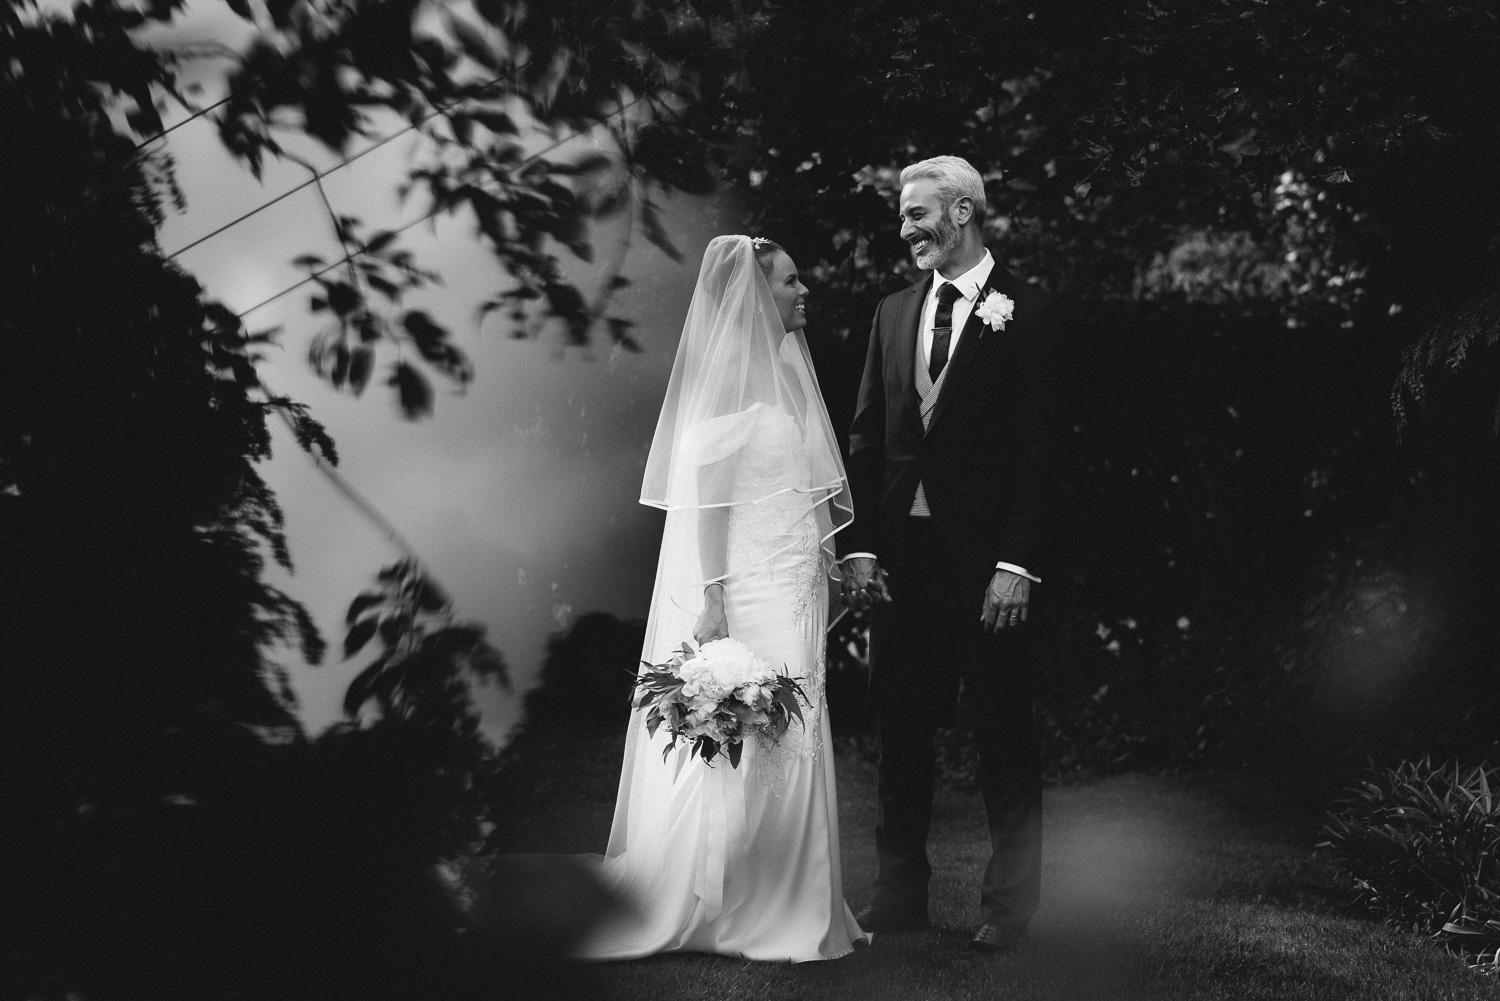 Joe and Hayley - Redhouse Barn, Stoke Prior, Worcestershire.